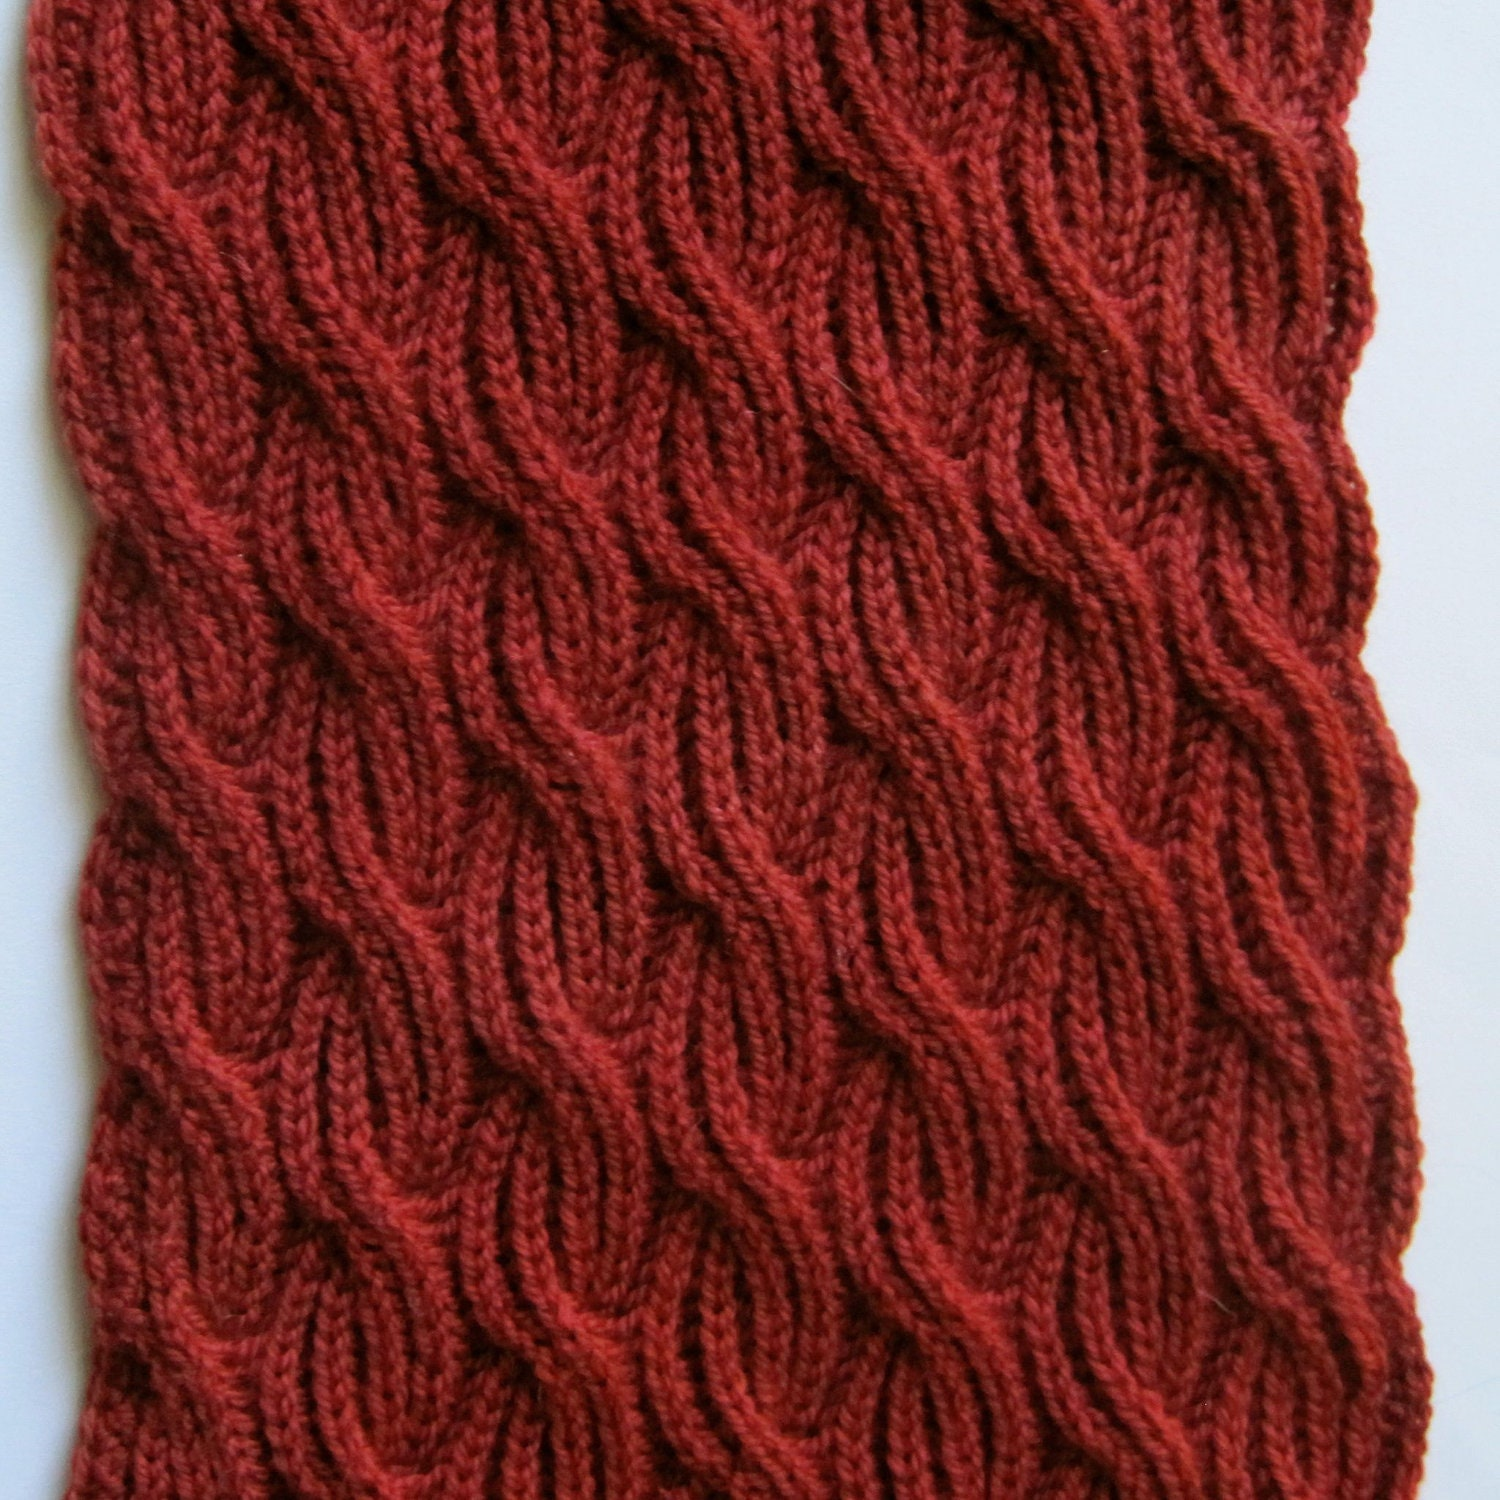 Knit Scarf Pattern: Brioche Cabled by WearableArtEmporium on Etsy